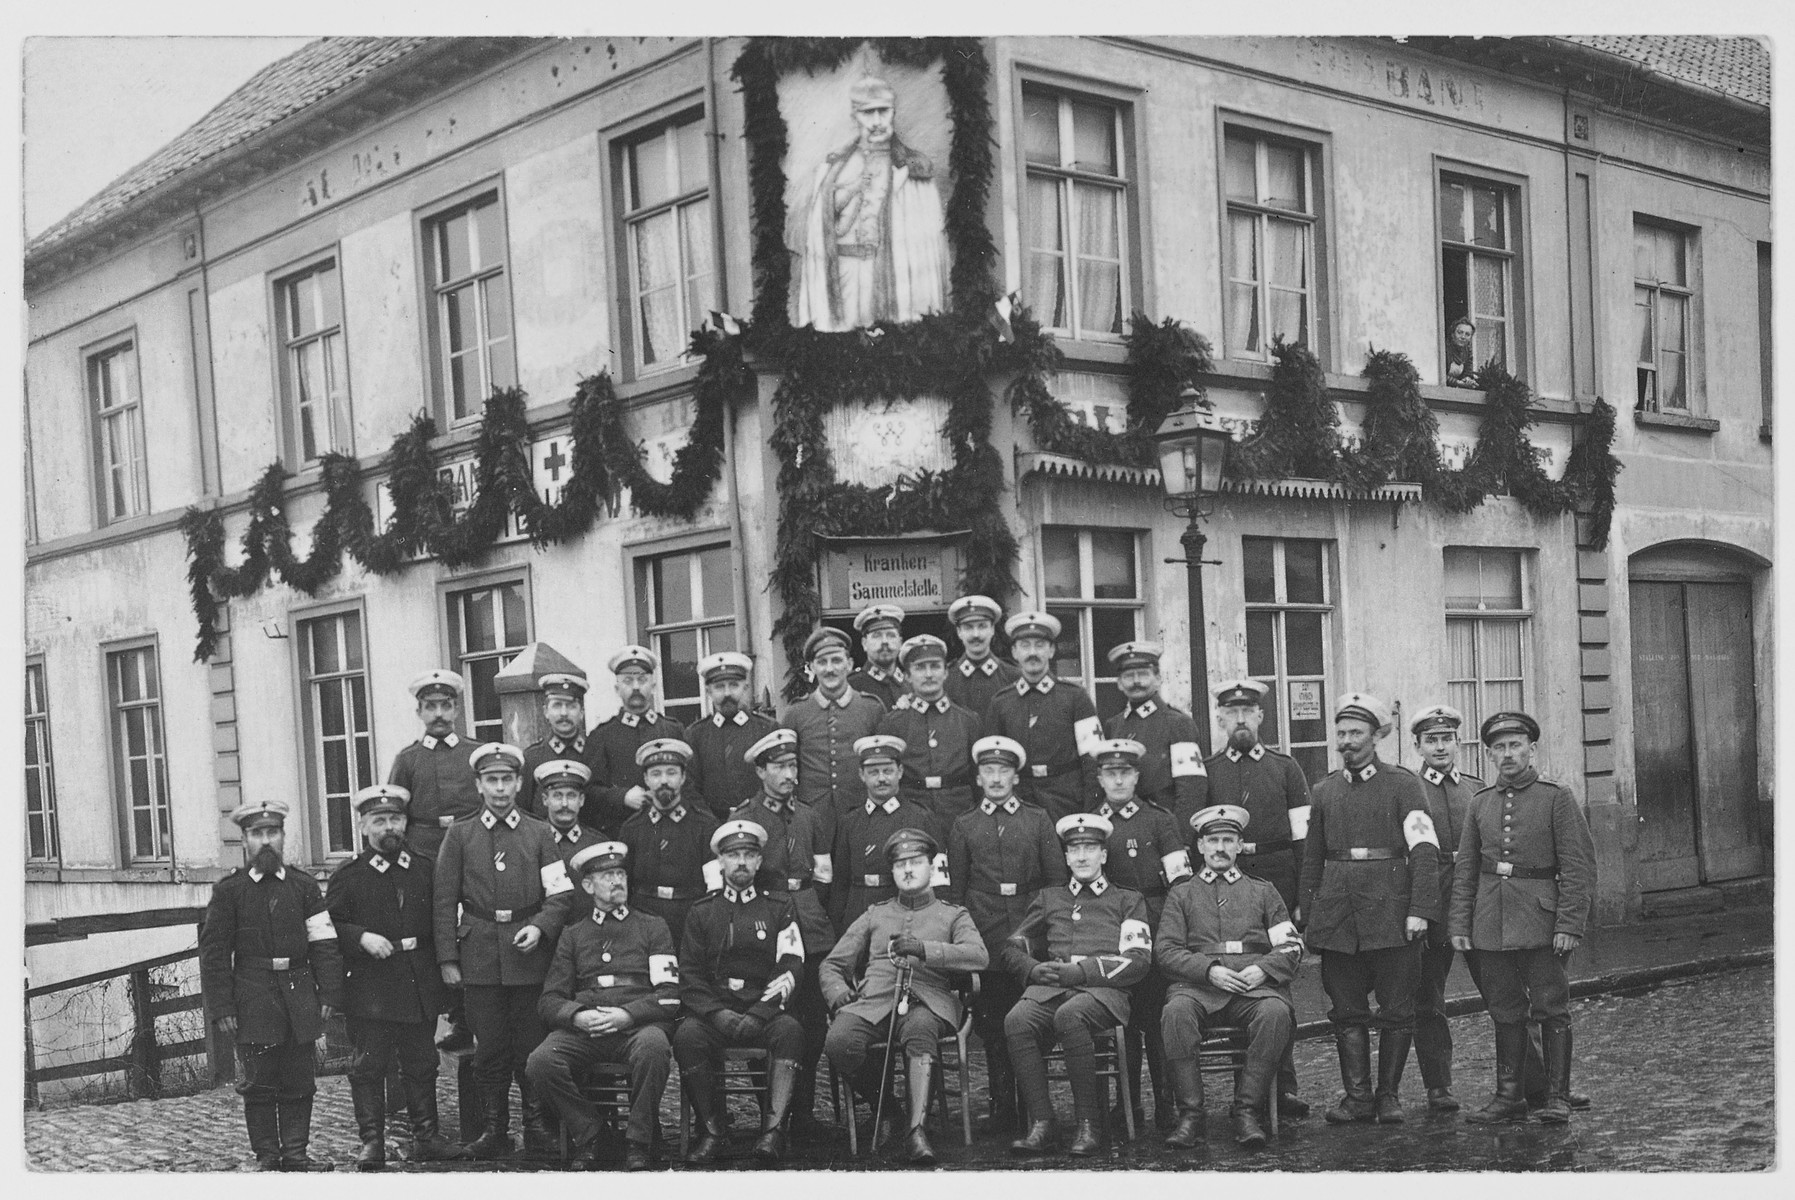 Group portrait of doctors who have been mobilized for the war effort, beneath a portrait of the Kaiser outside a hospital.